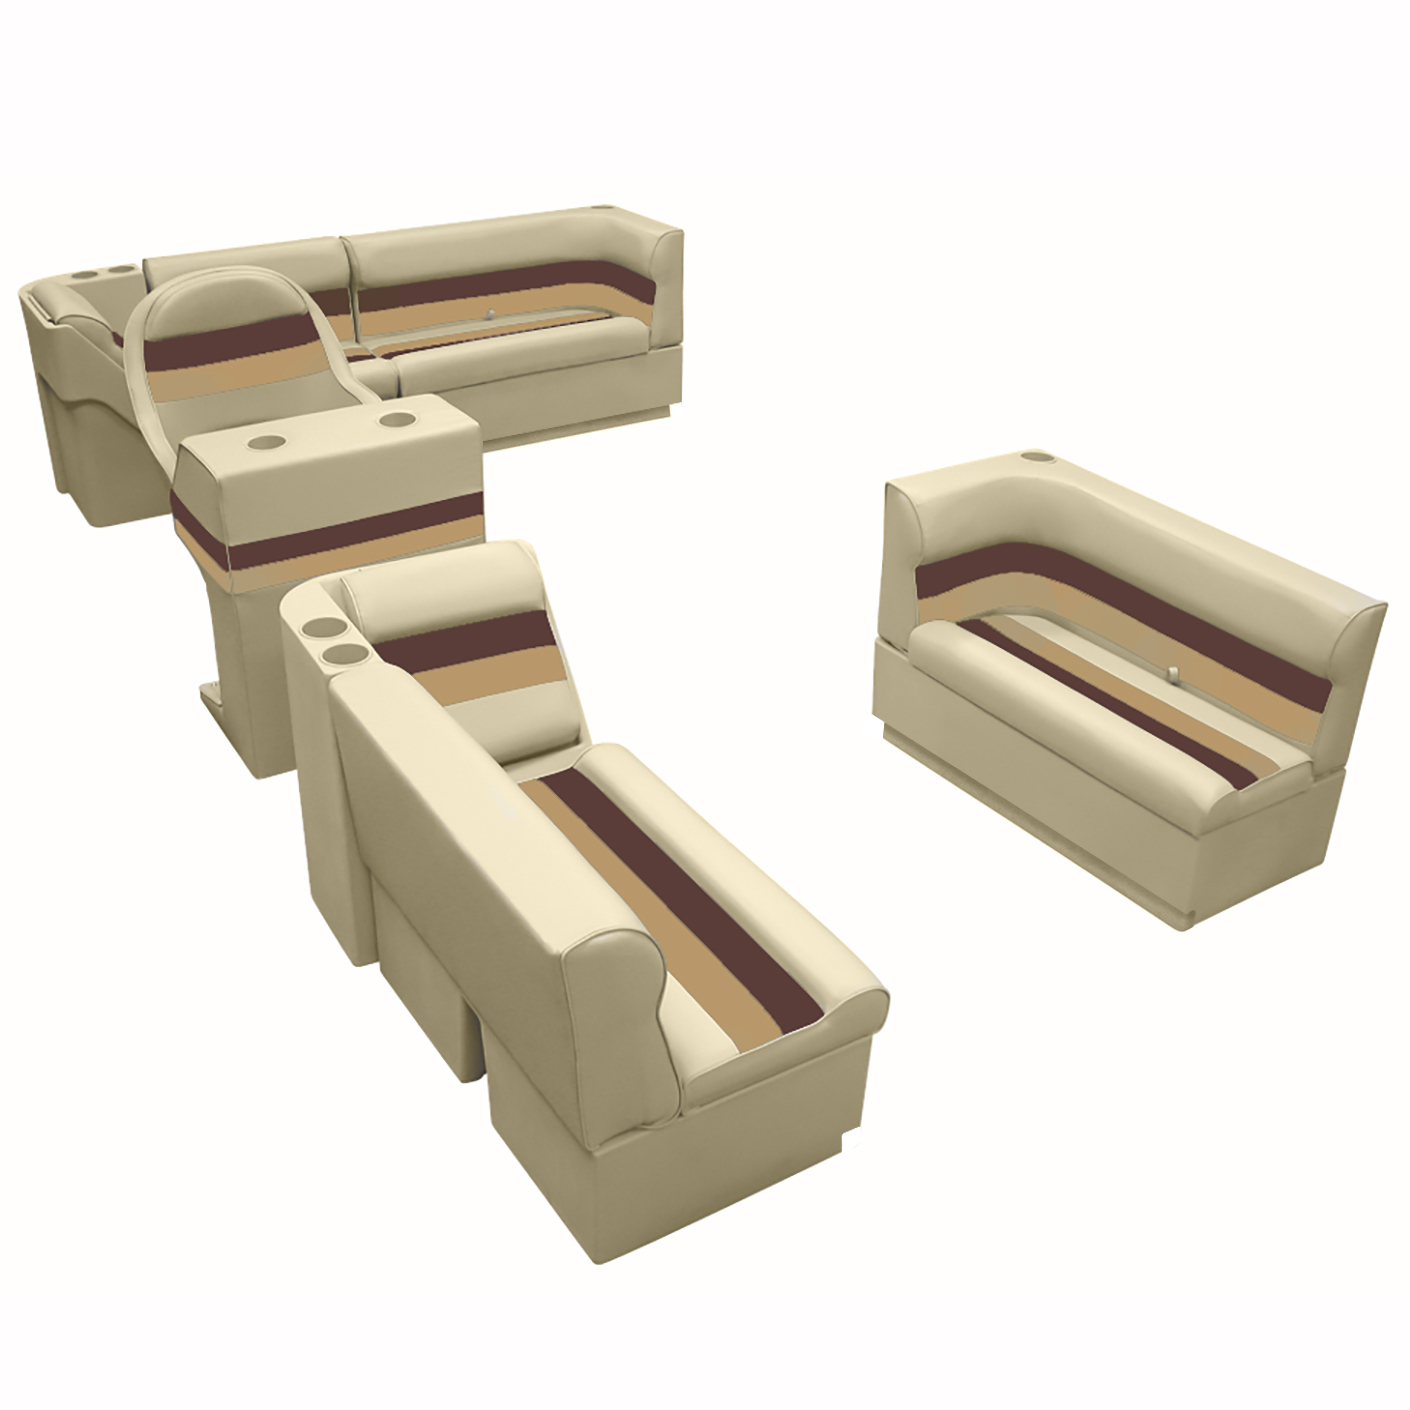 Deluxe Pontoon Furniture w/Toe Kick Base, Complete Boat Package A, Sand/Chestnut